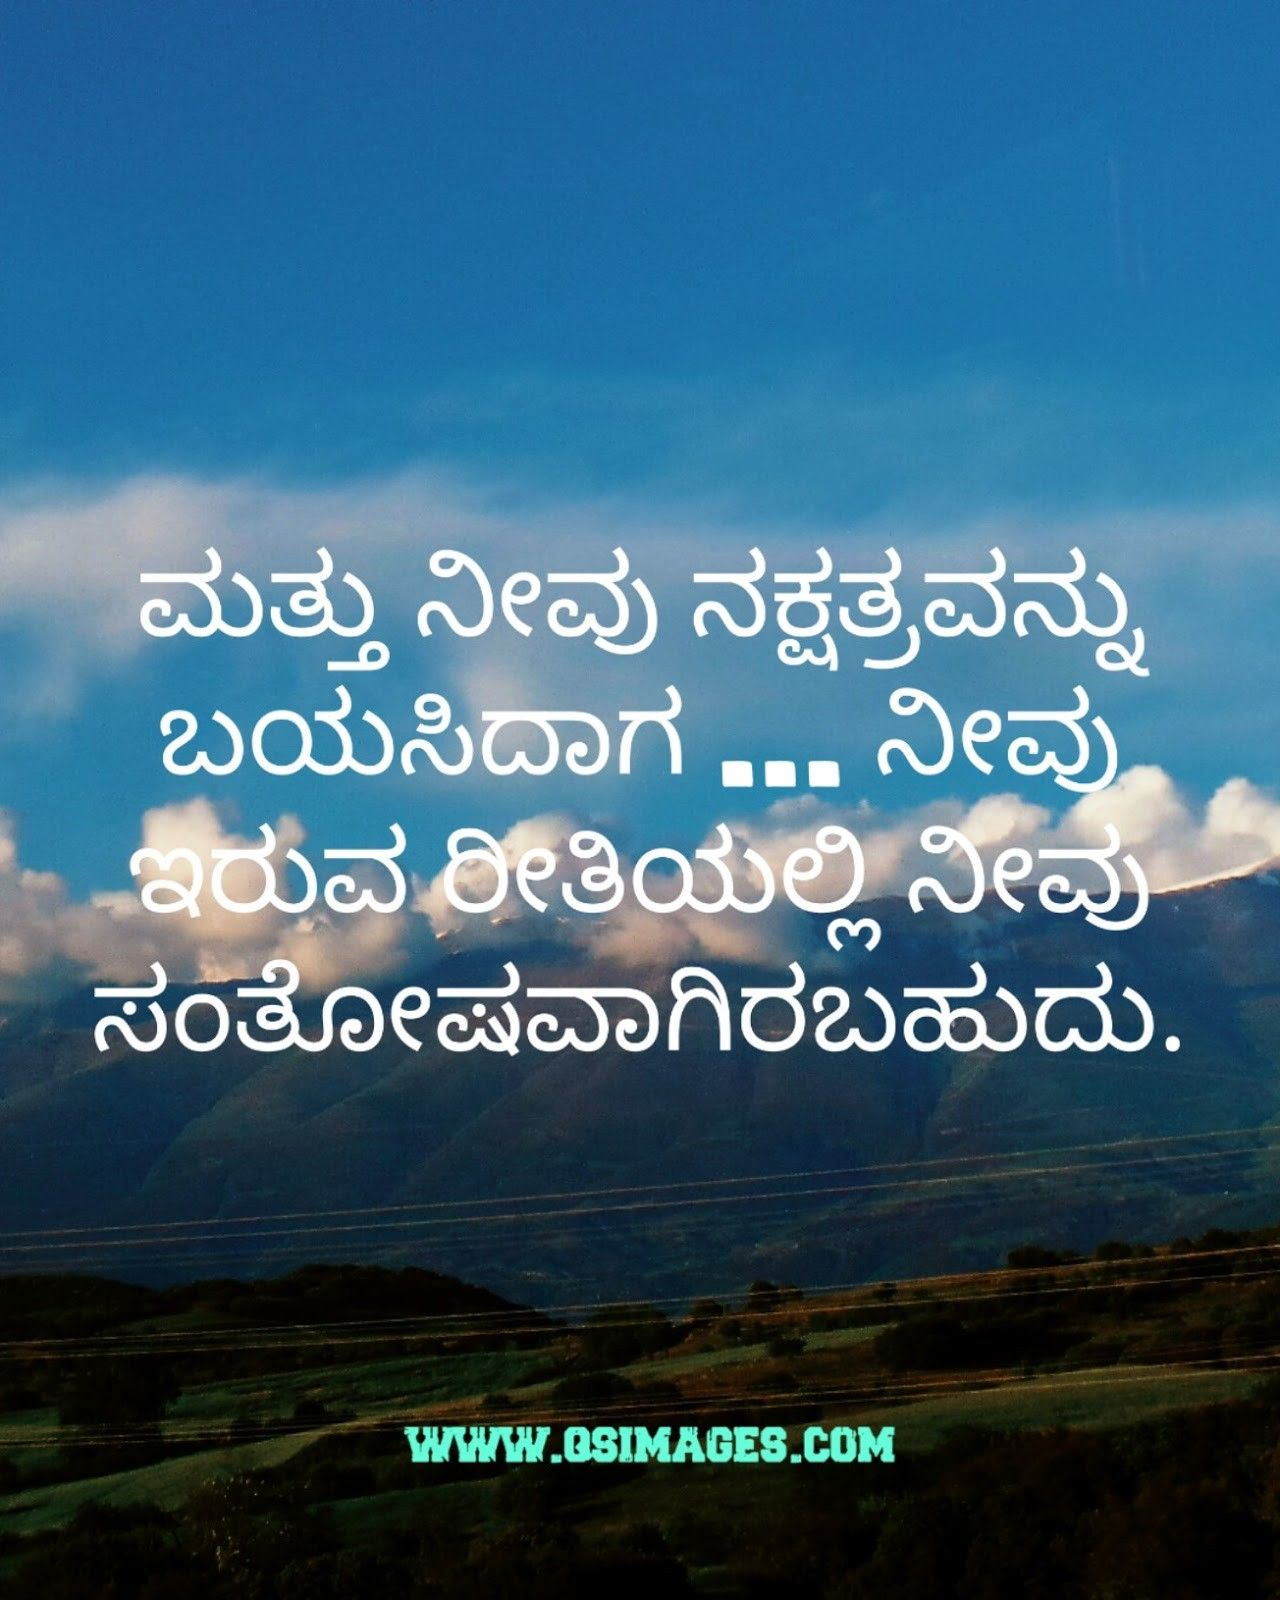 Best ultimate inspirational quotes images in Kannada